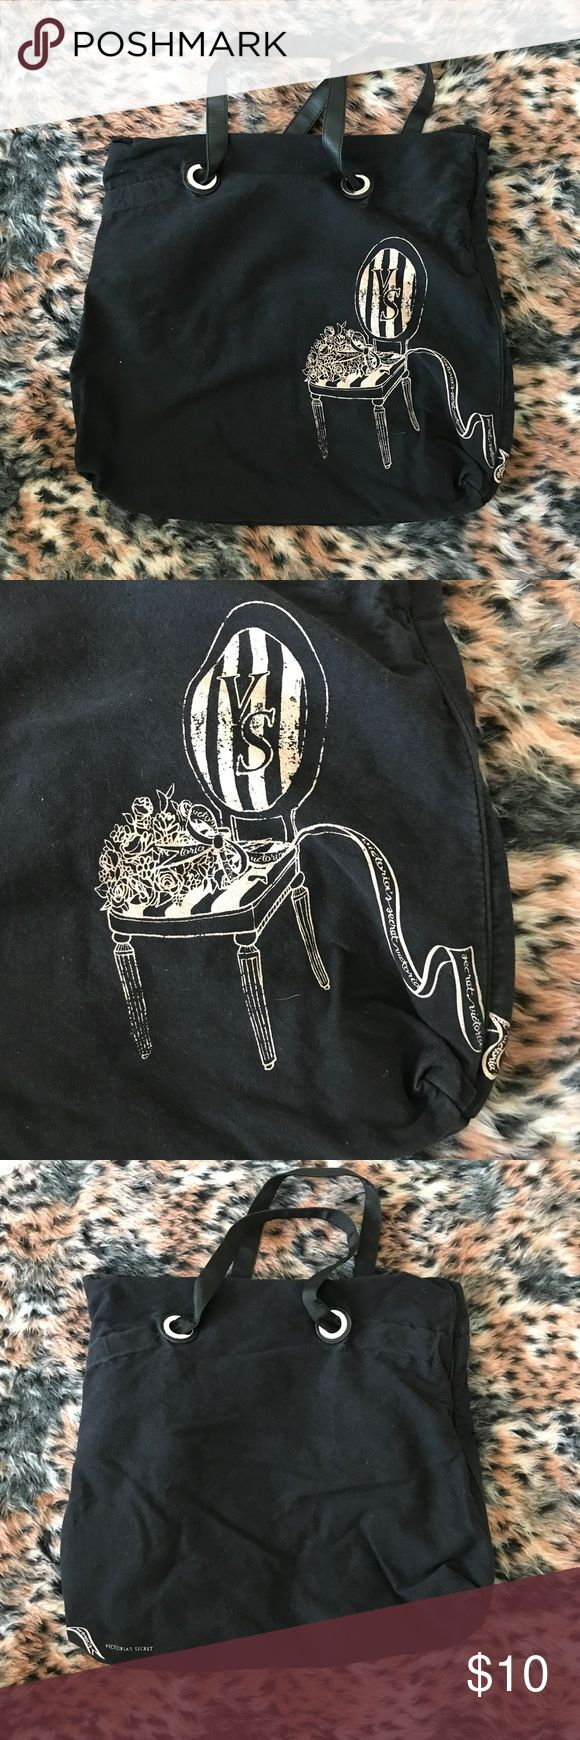 A black and creme Victoria's Secret tote A gently used black and creme Victoria's Secret tote with a print on the front right corner of the tote. It has a small zip pocket inside of the bag. There isn't any Wear or stains inside of the tote. Victoria's Secret Bags Totes